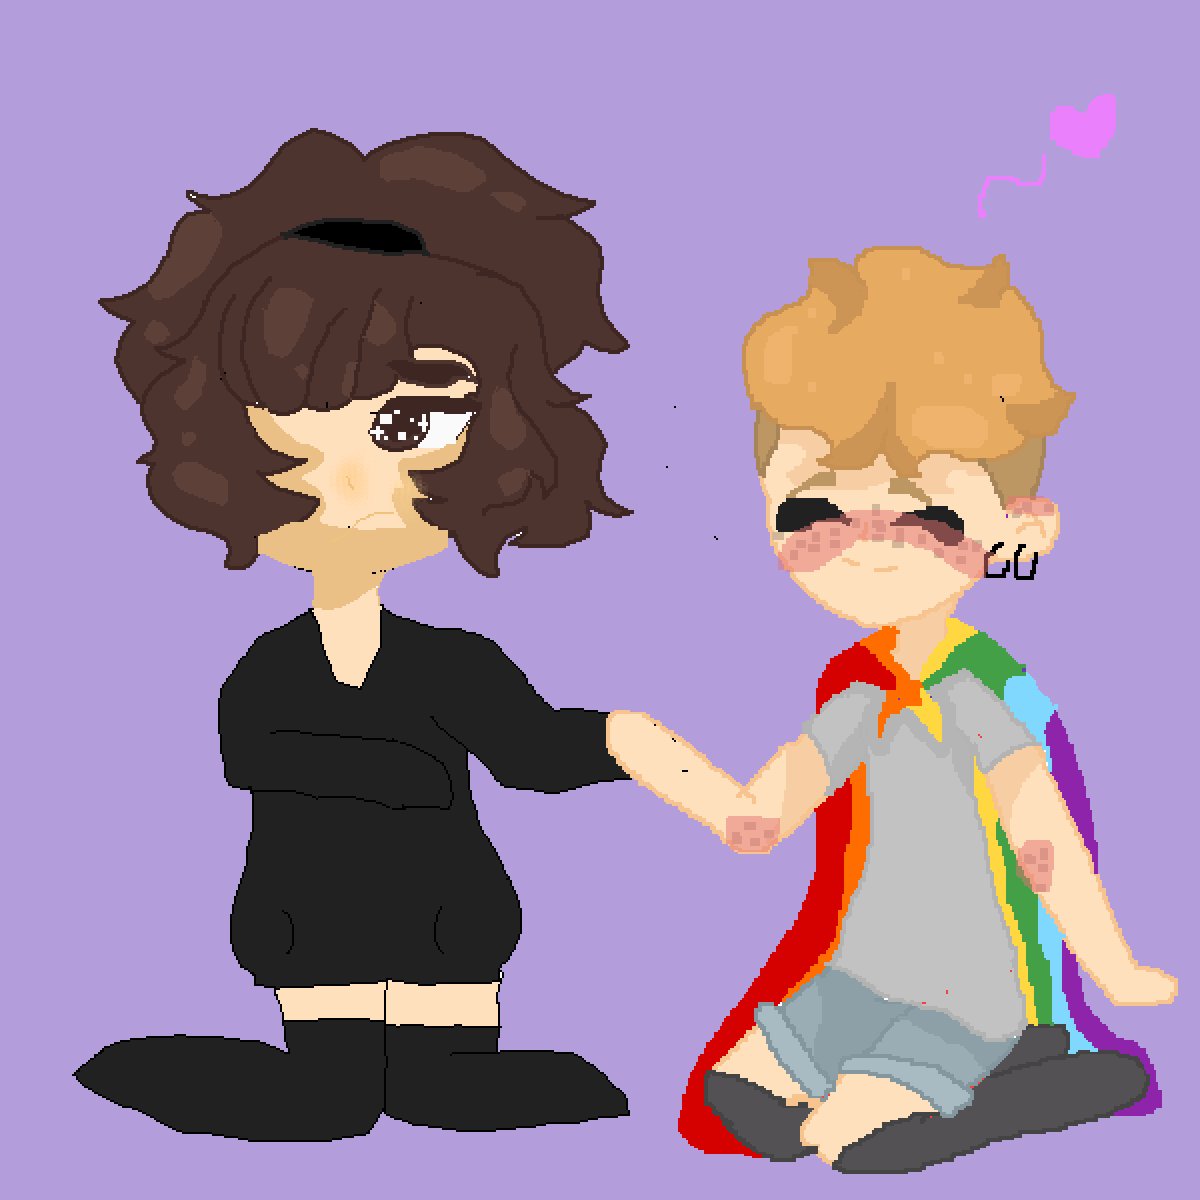 Collab with @Krisdinoloves by OwO-Sky-UwU